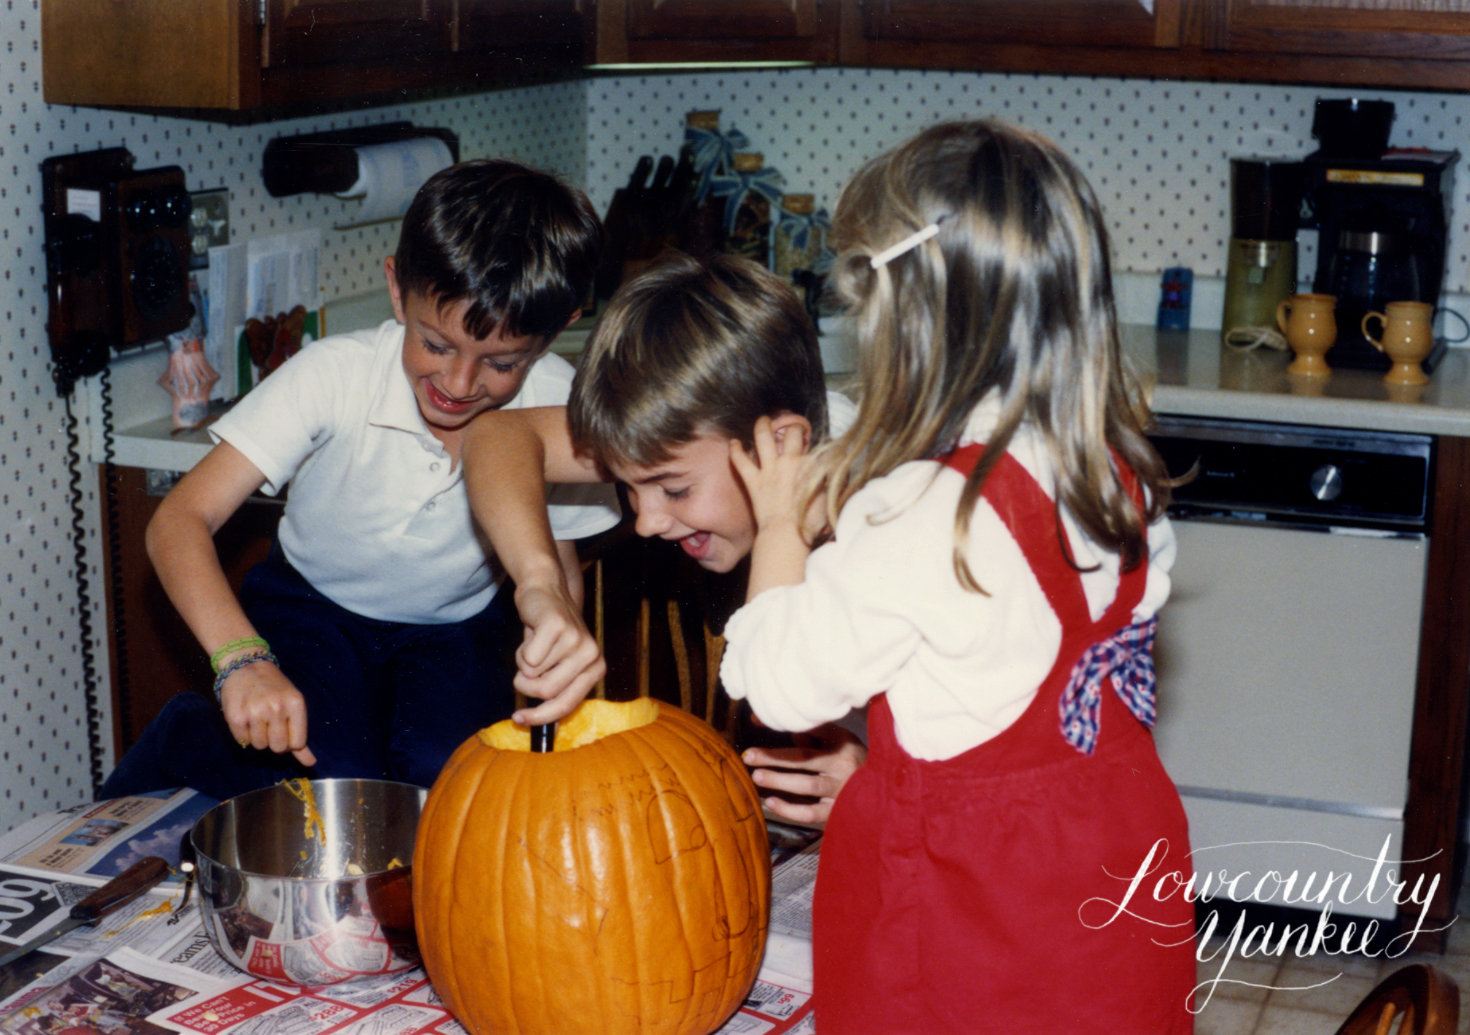 I'm not sure if I was getting pumpkin out of my brother's ear or if I was giving him a pumpkin wet willie. Either way, we were having fun!